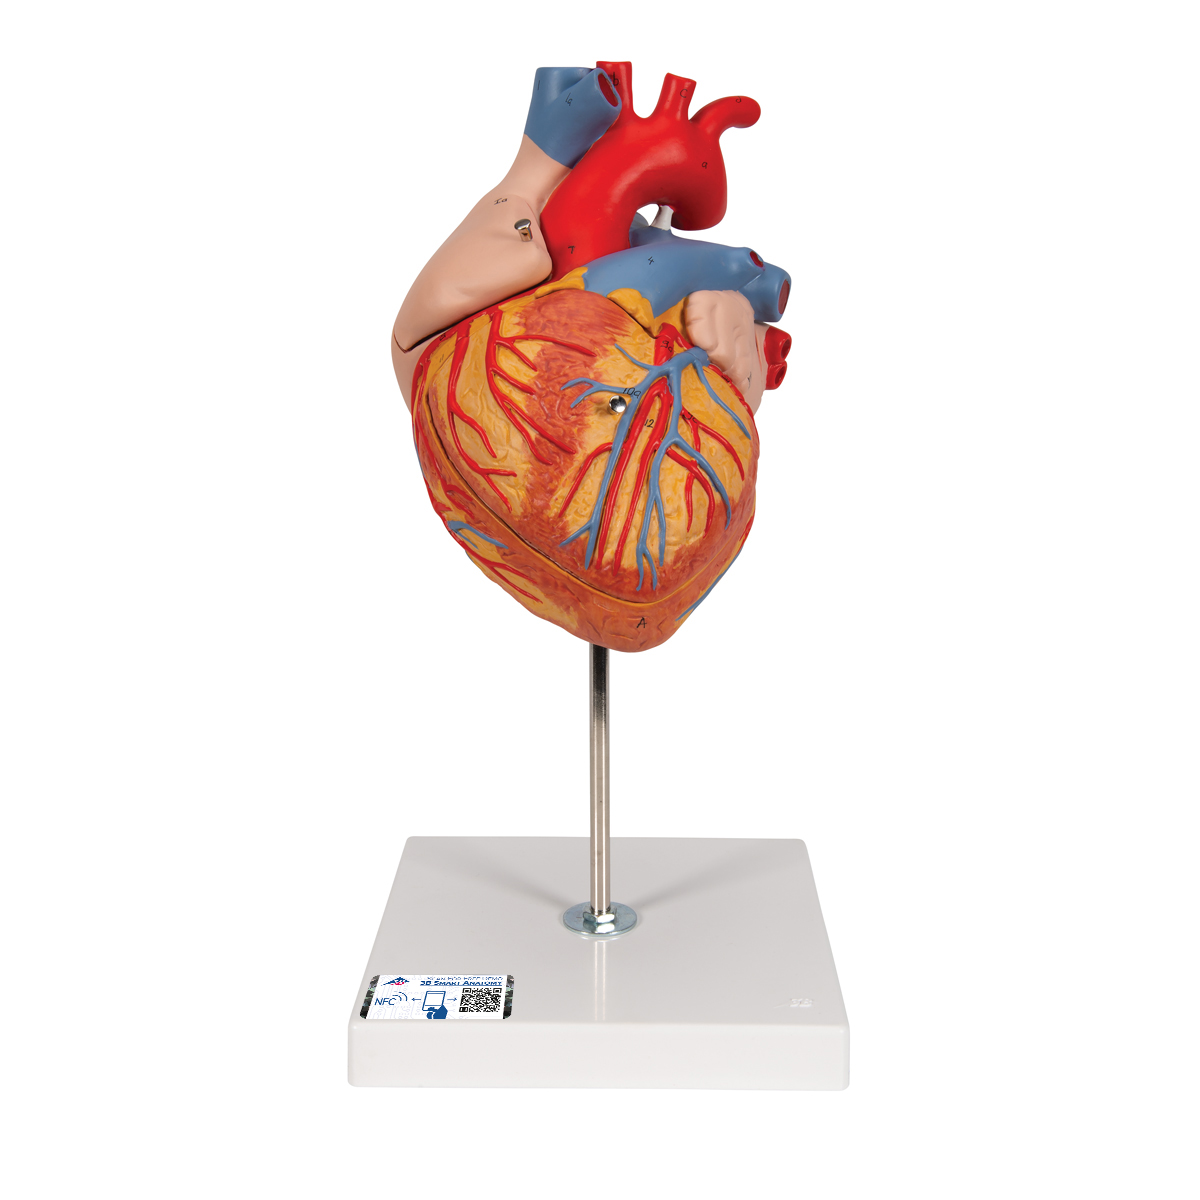 Anatomical Heart Model | Anatomy of the Heart | 4-Part Heart Model